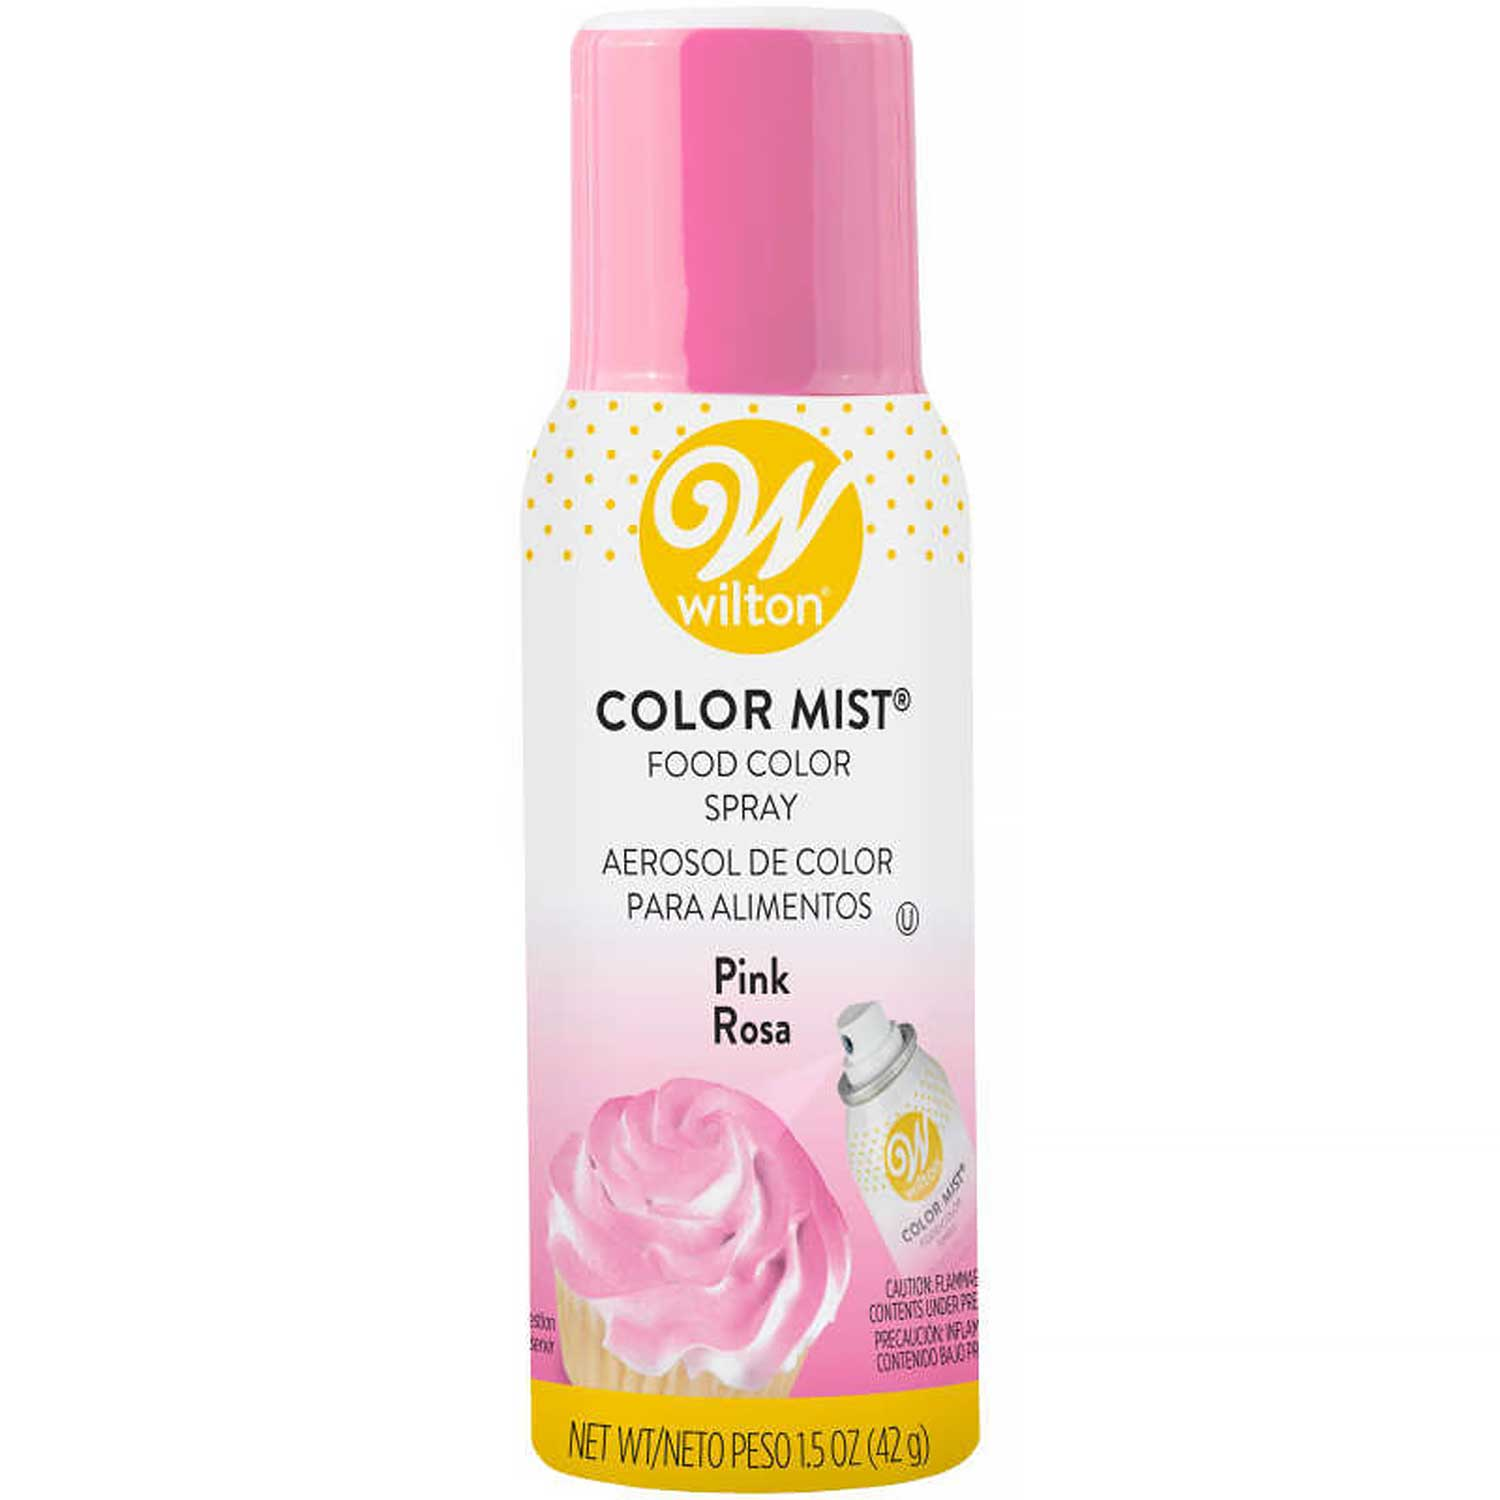 Wilton Color Mist Spray Pink